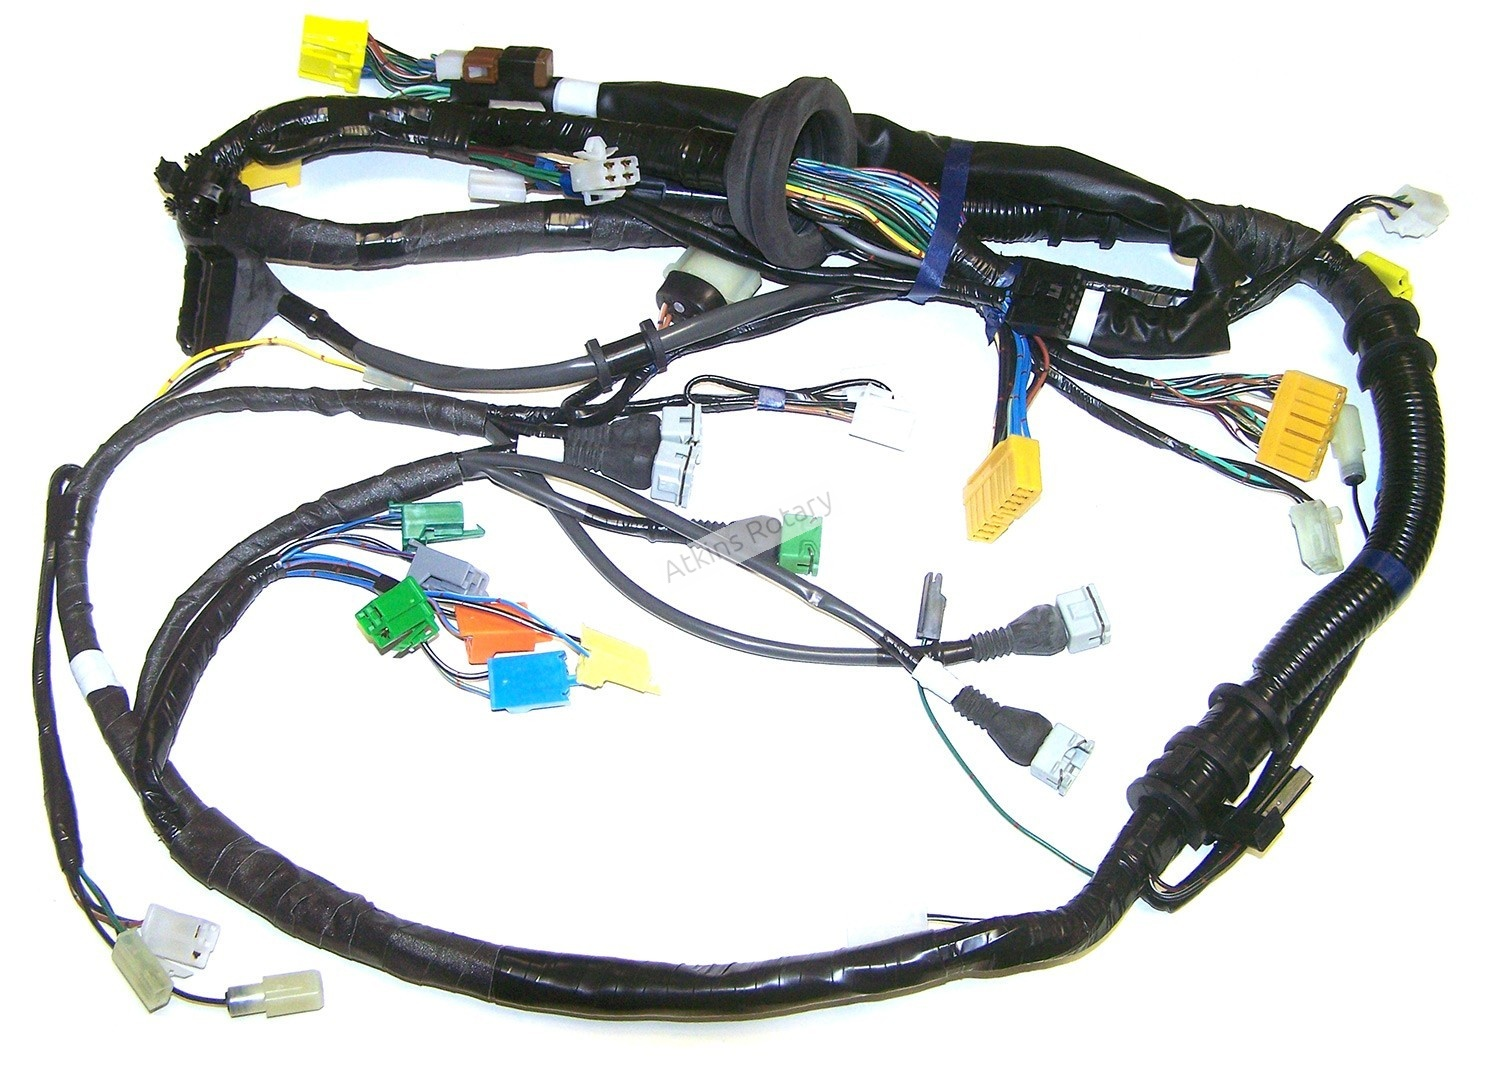 N332-18-051KDetail What Engine Wiring Harness on dodge sprinter engine harness, engine control module, engine harmonic balancer, bmw 2 8 engine wire harness, hoist harness, suspension harness, oem engine wire harness,